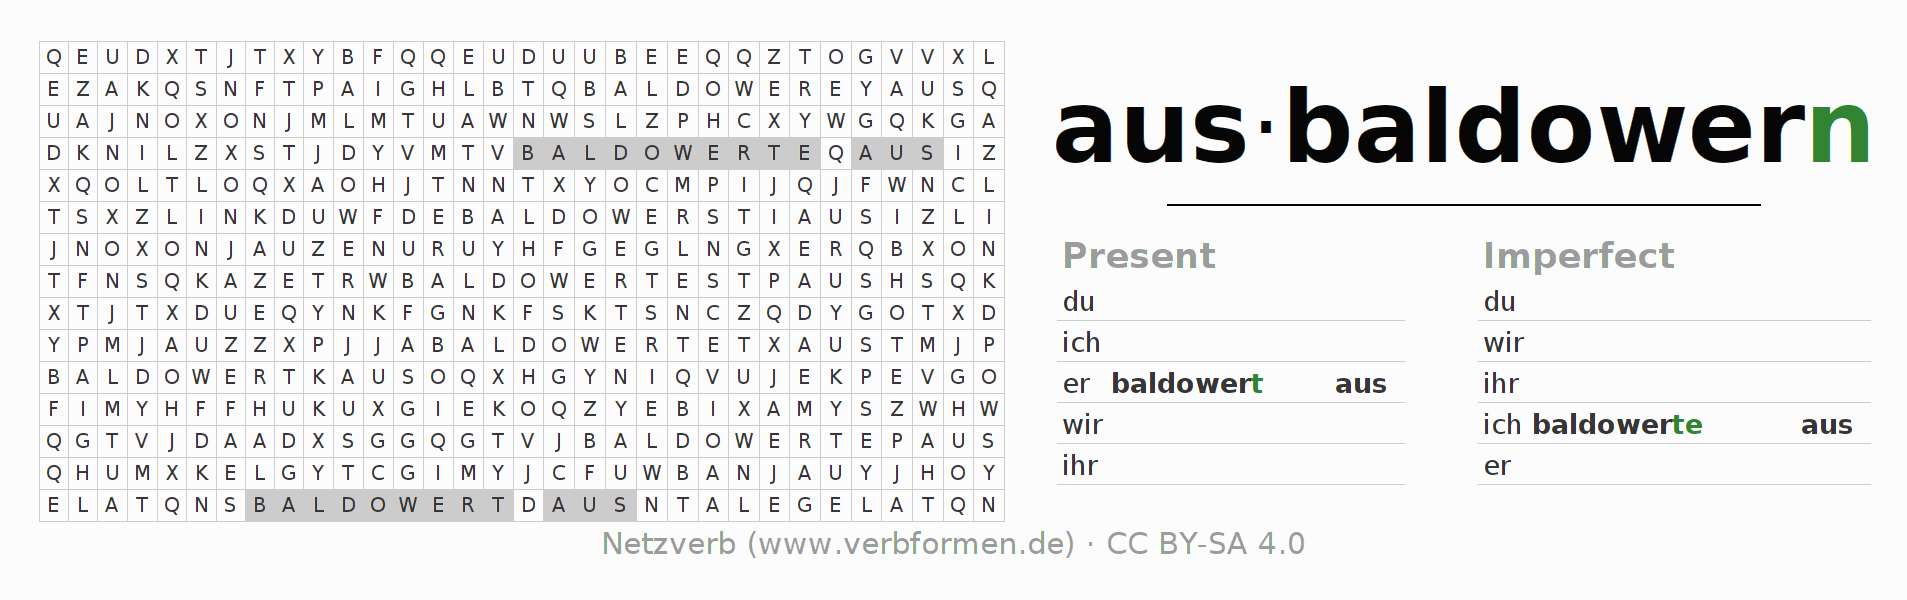 Word search puzzle for the conjugation of the verb ausbaldowern